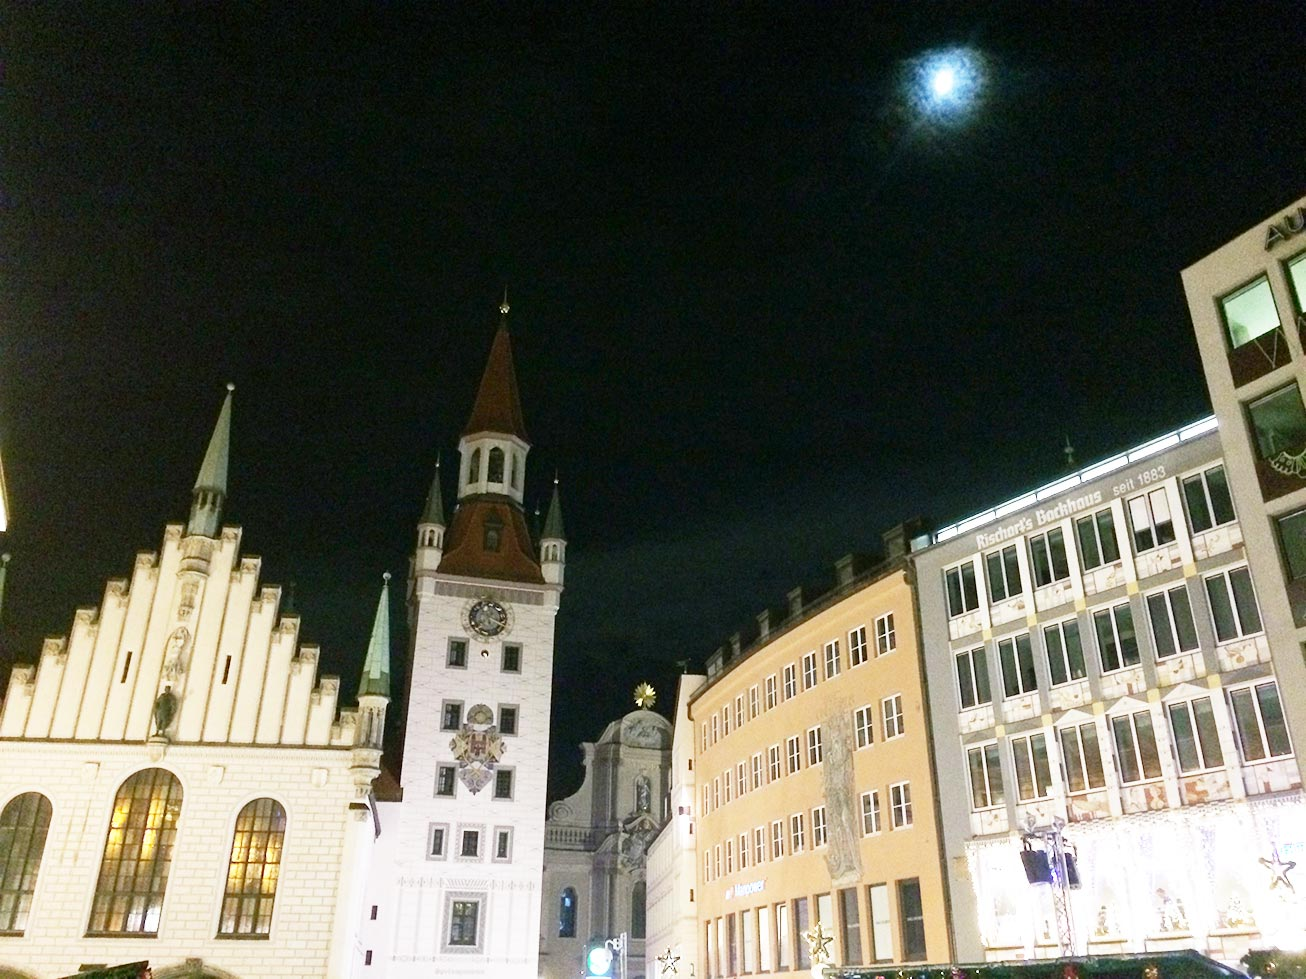 Town Square in Munich, Germany at night with a full moon.